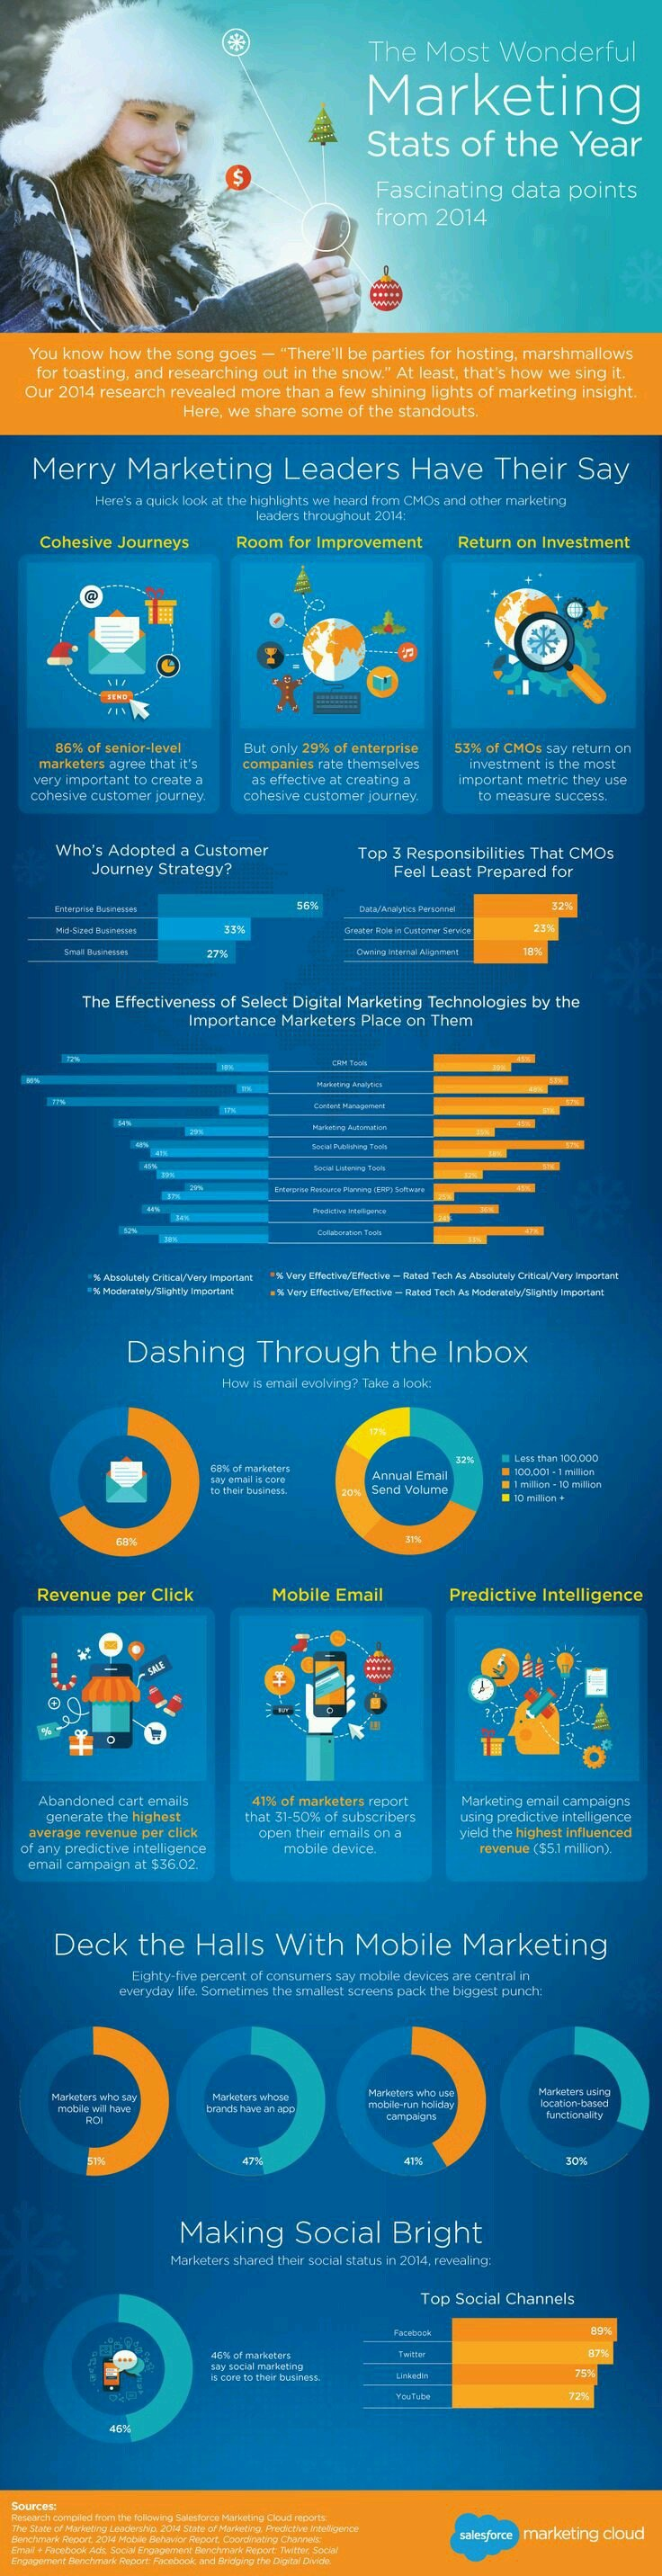 The most wonderful marketing stats of the year 2014 #Infographic